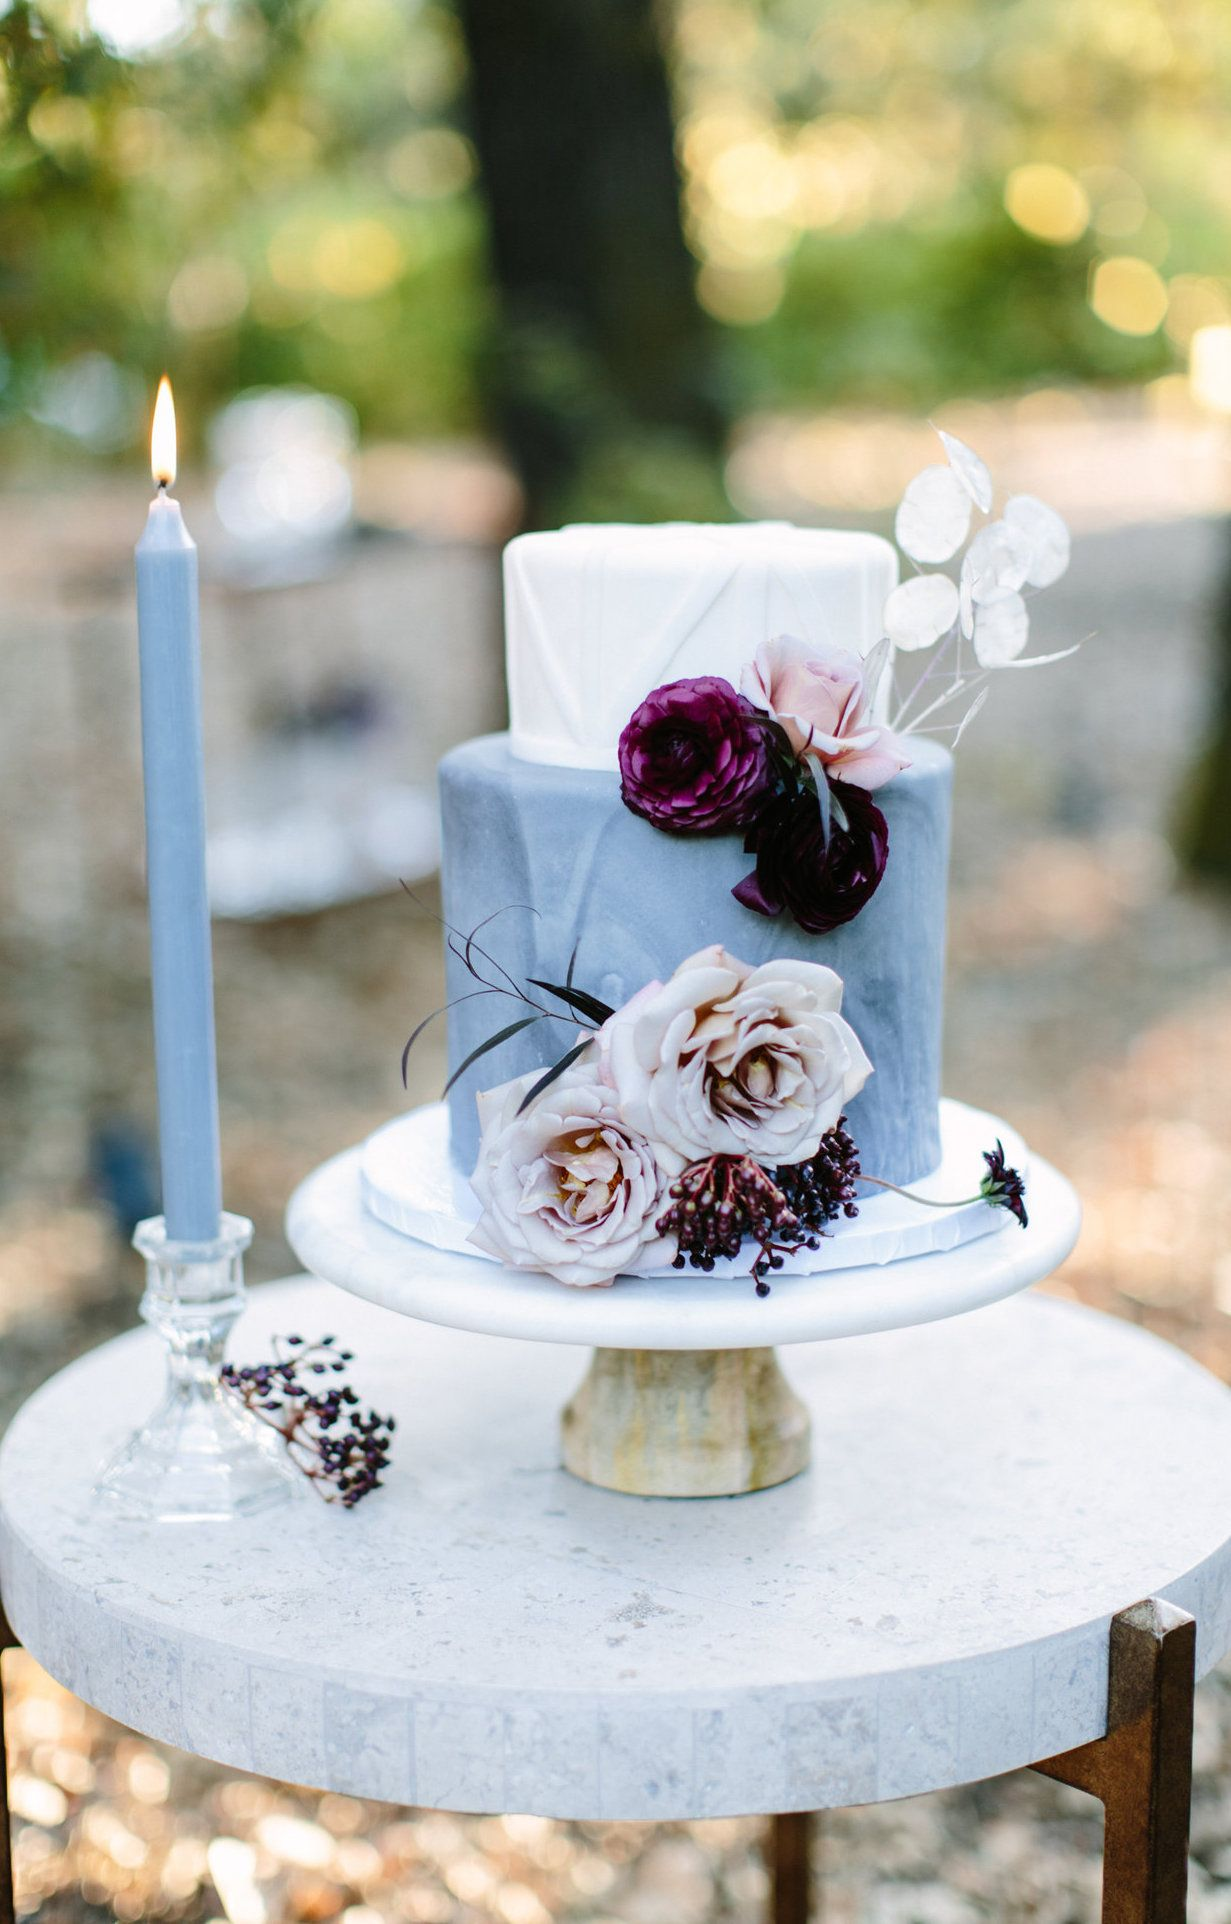 Wedding cake inspiration deep burgundy and blush floral details on